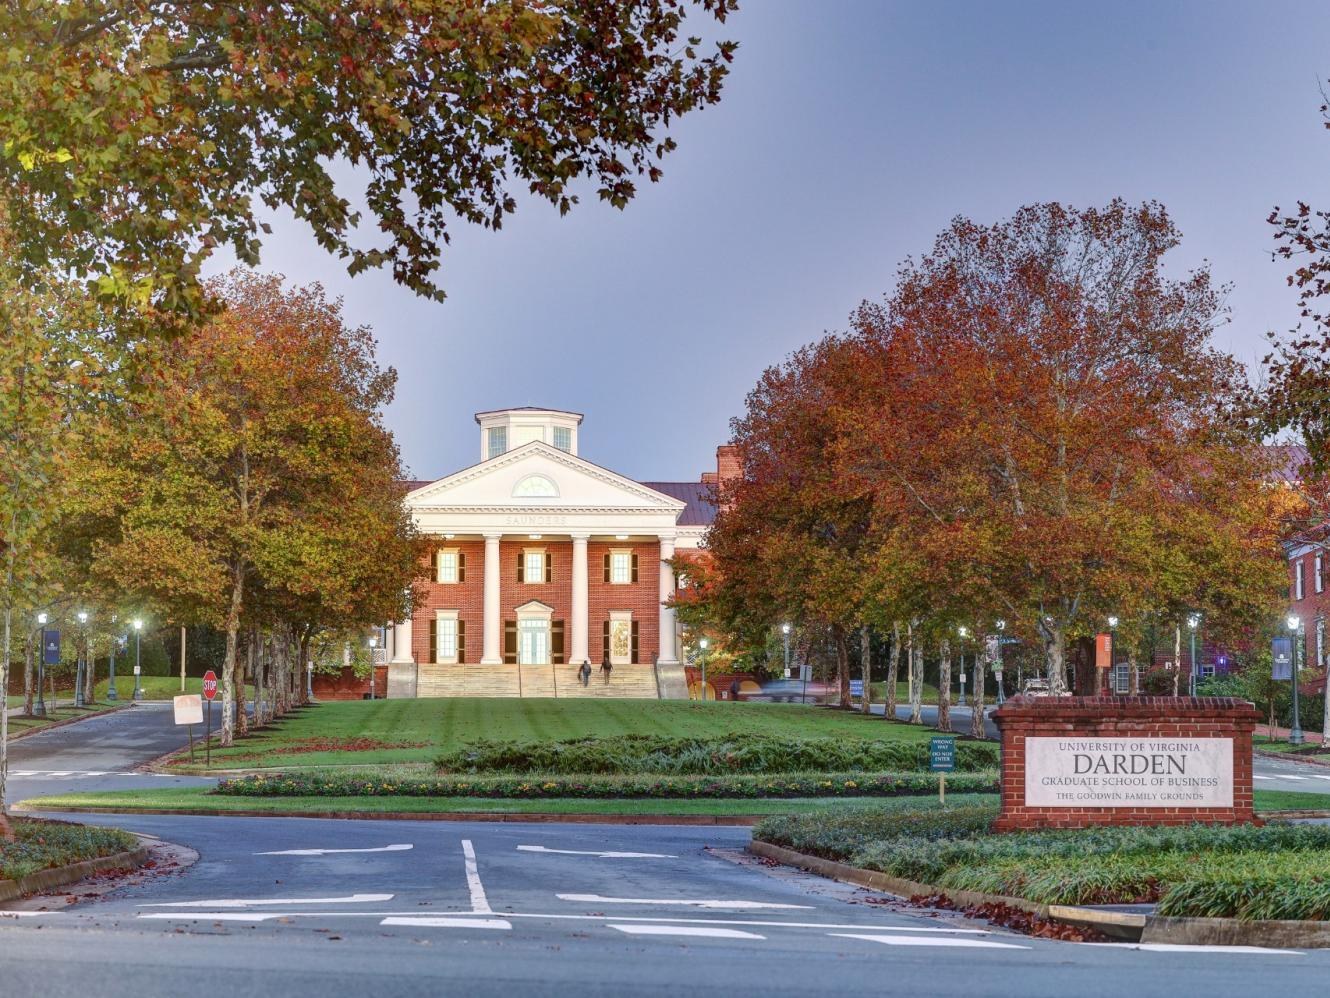 University_of_Virginia_Darden_School_of_Business.jpg